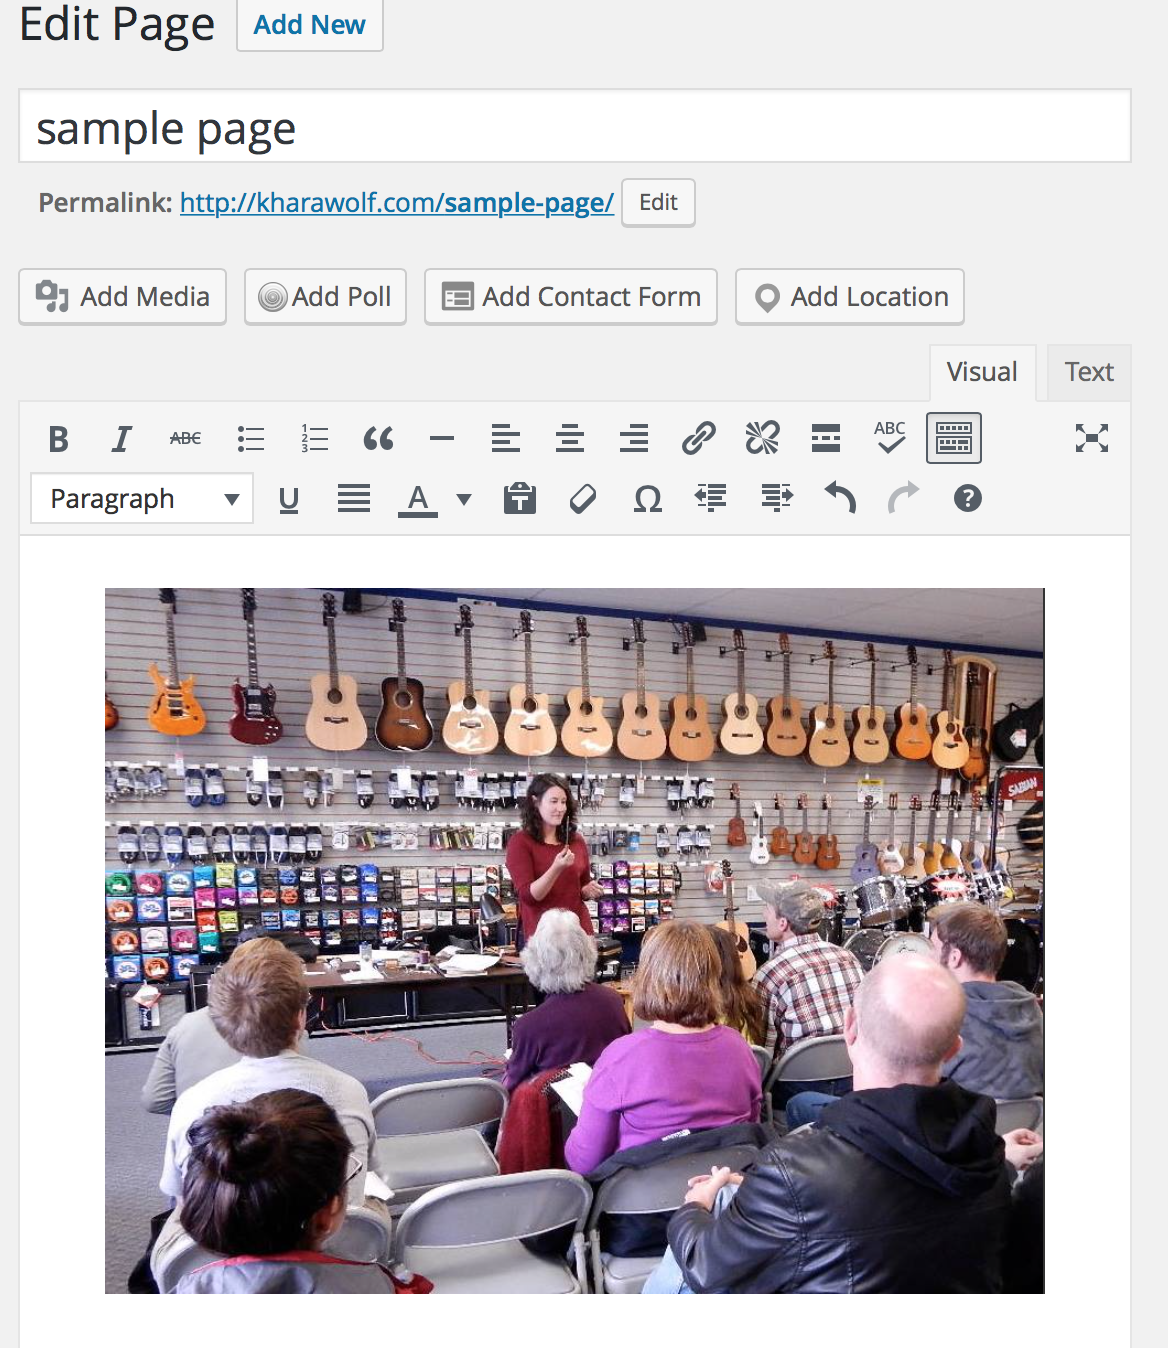 format your content in sample page